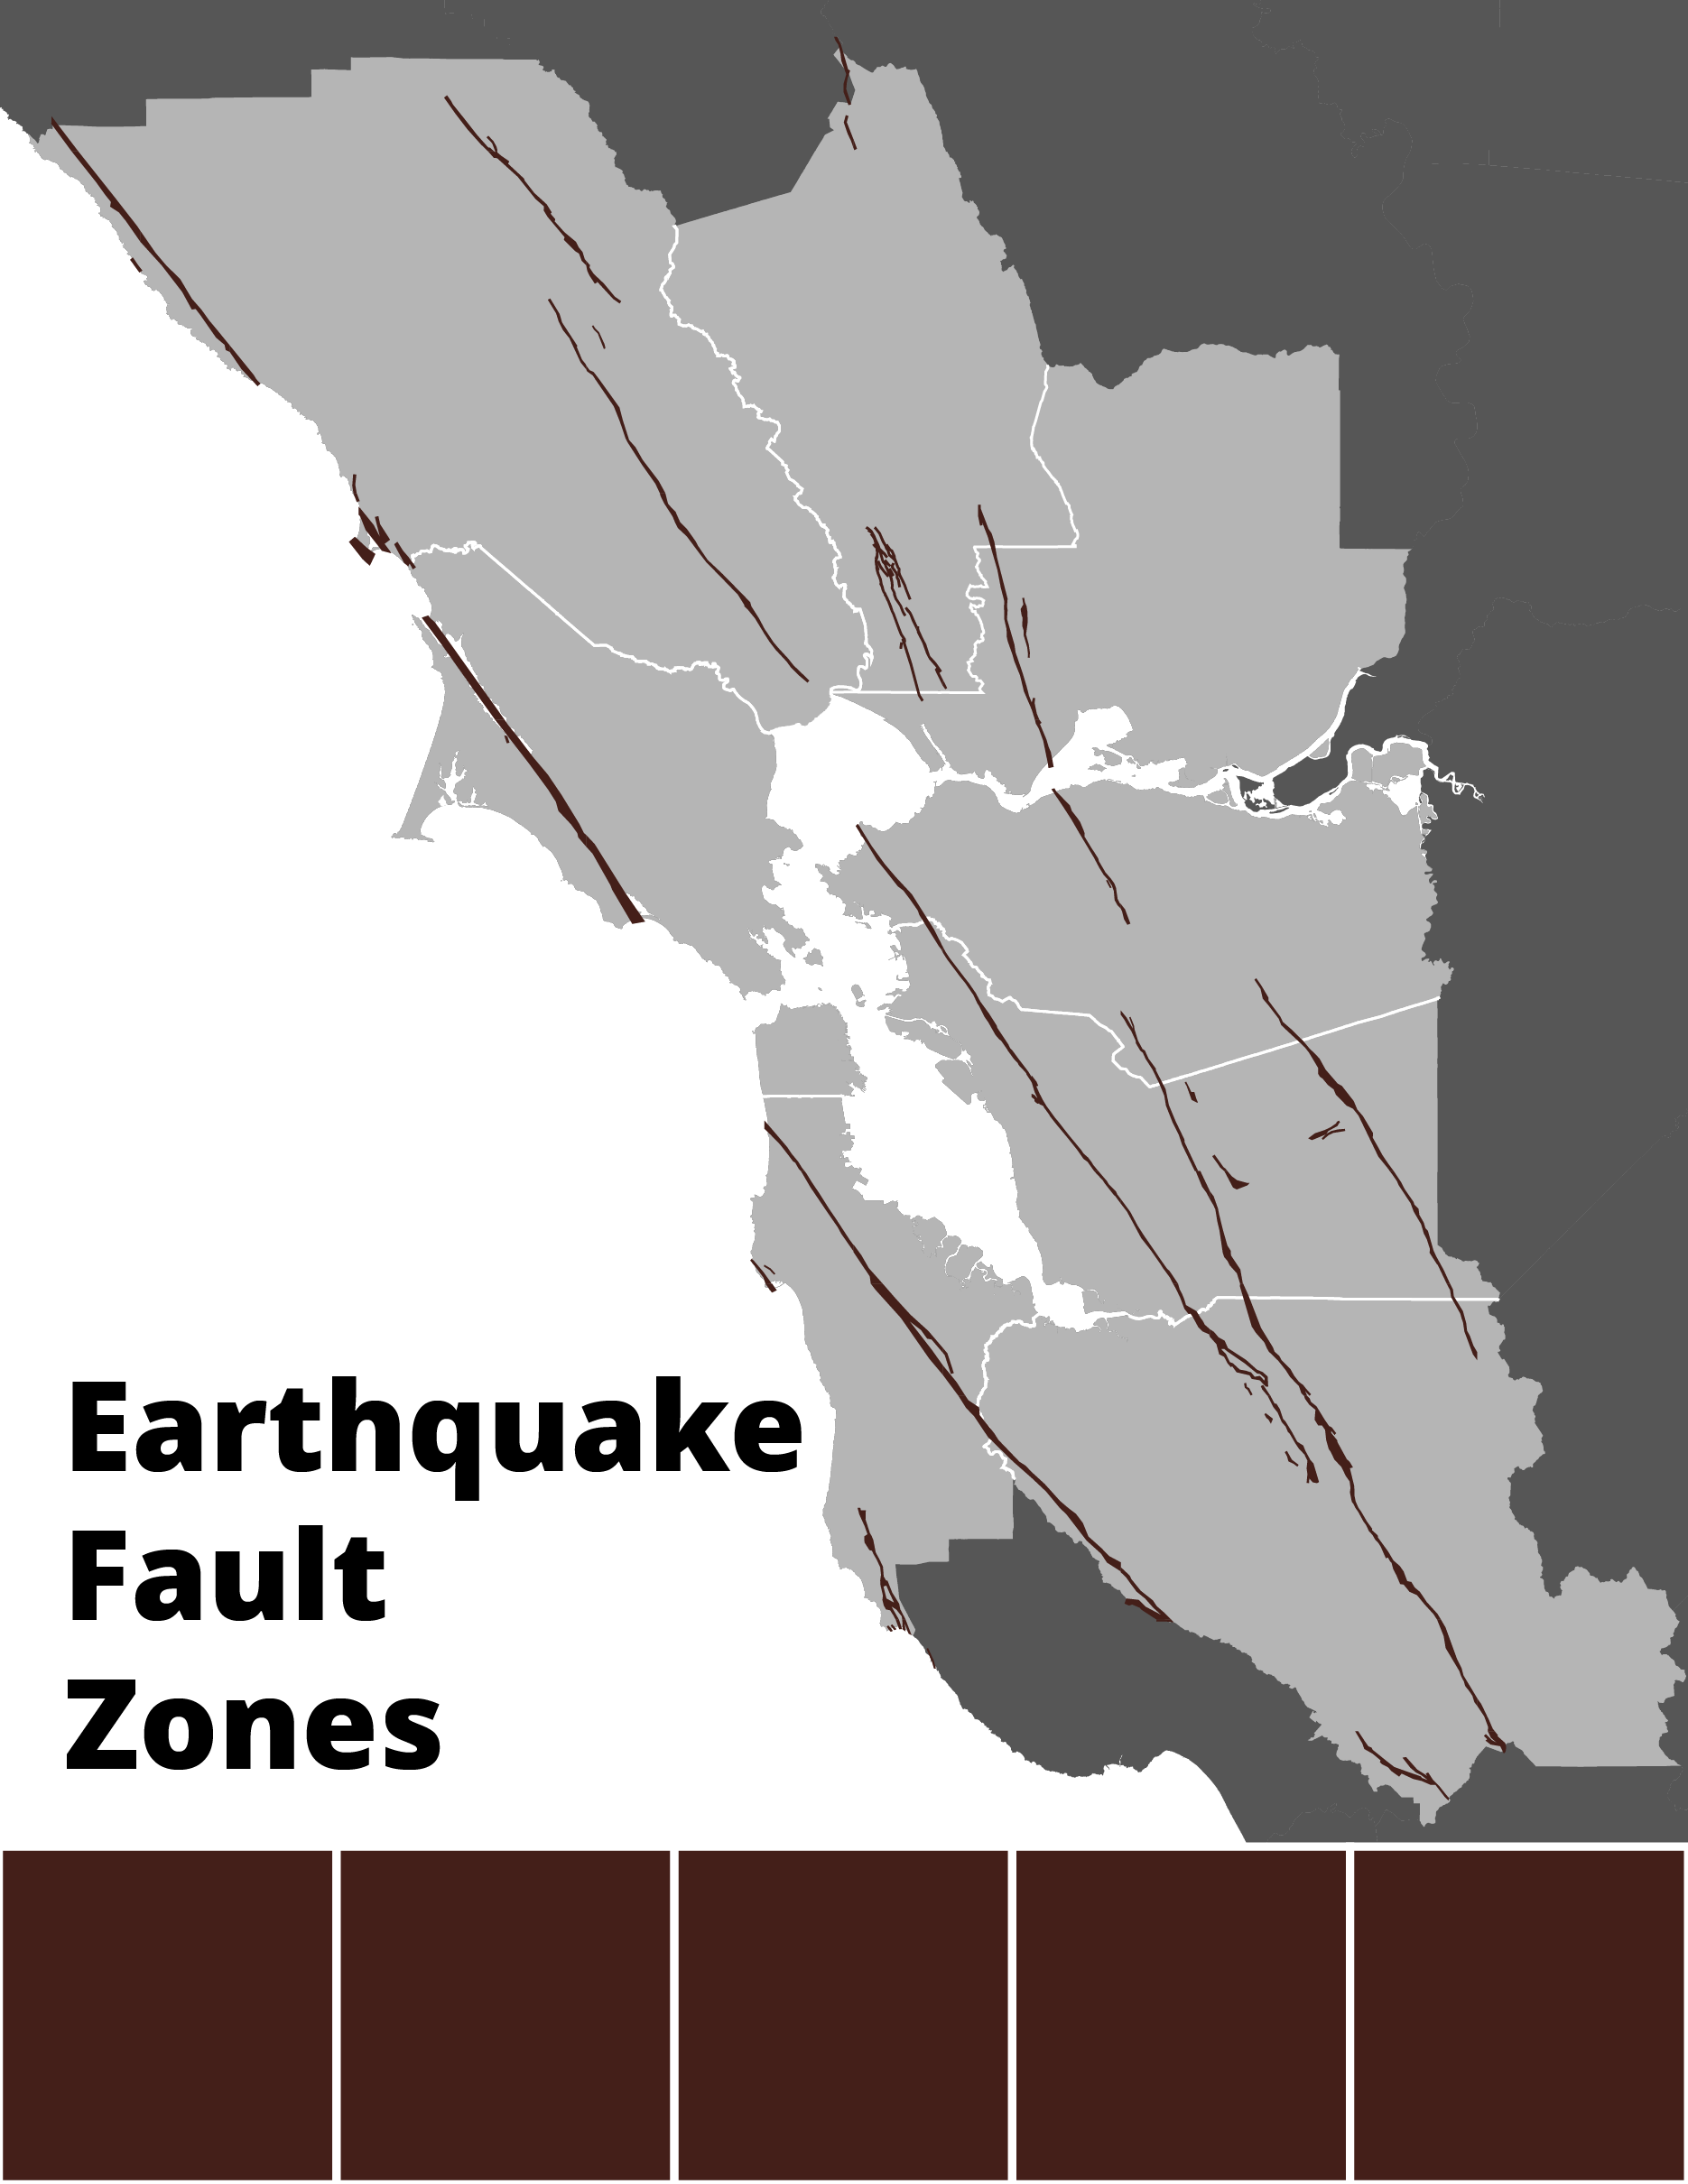 Earthquake Fault Zones